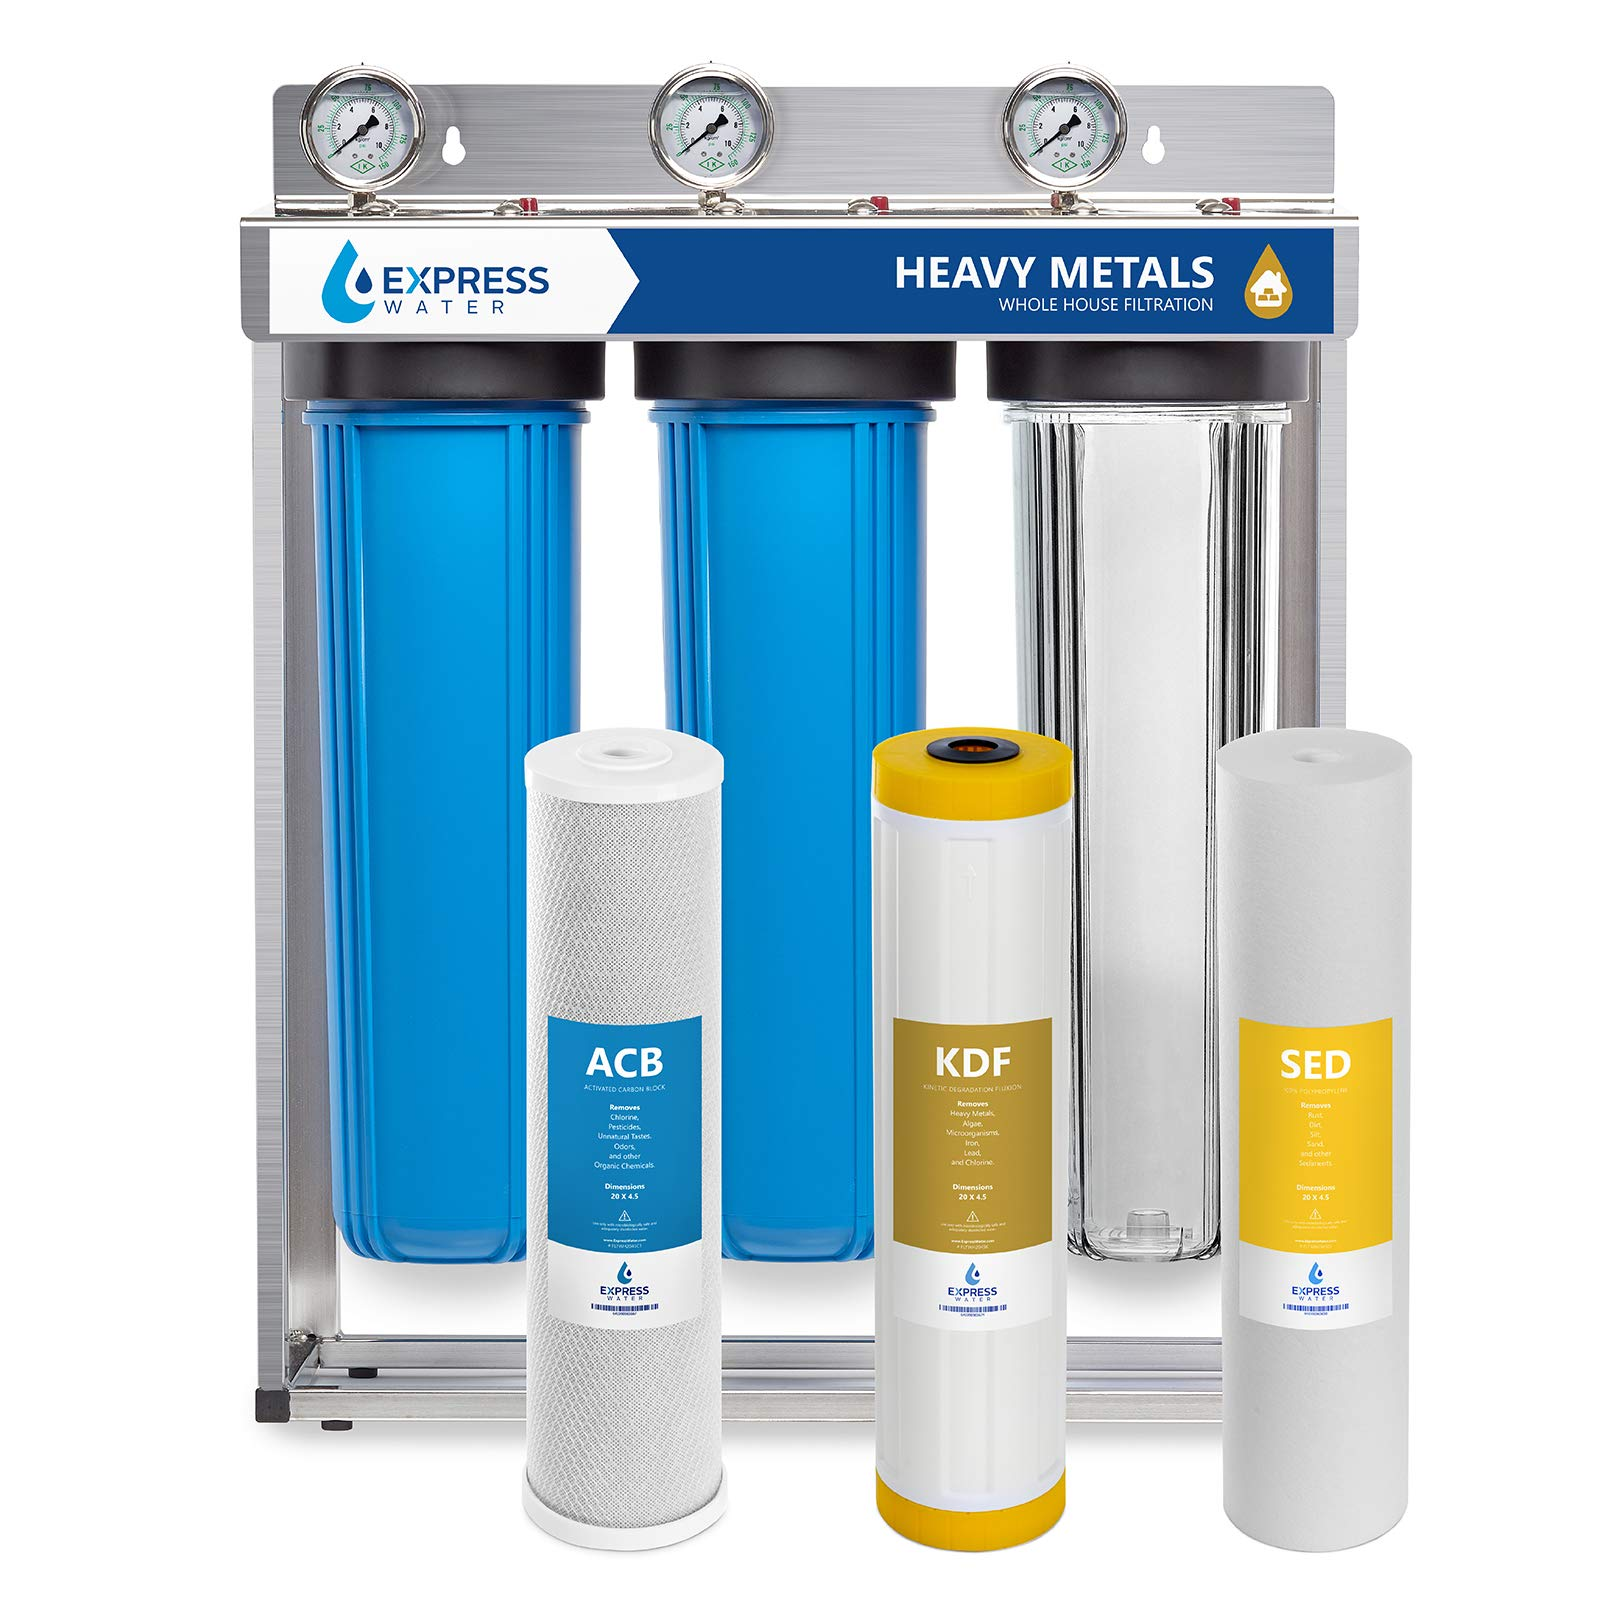 "Express Water Heavy Metal Whole House Water Filter - 3 Stage Home Water Filtration System - Sediment, KDF, Carbon Filters - includes Pressure Gauges, Easy Release, and 1"" Inch Connections"